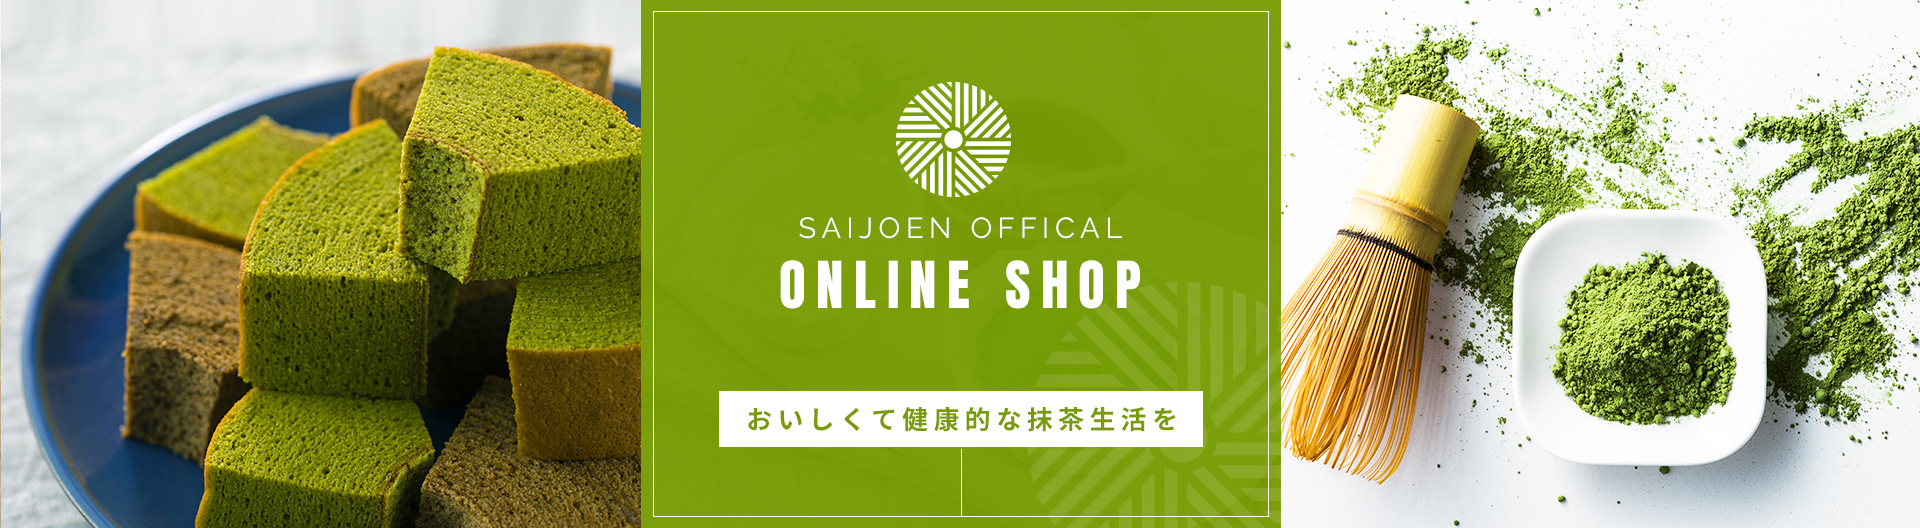 https://gigaplus.makeshop.jp/matchashop/img/feature/aiya-bana-pc.jpg